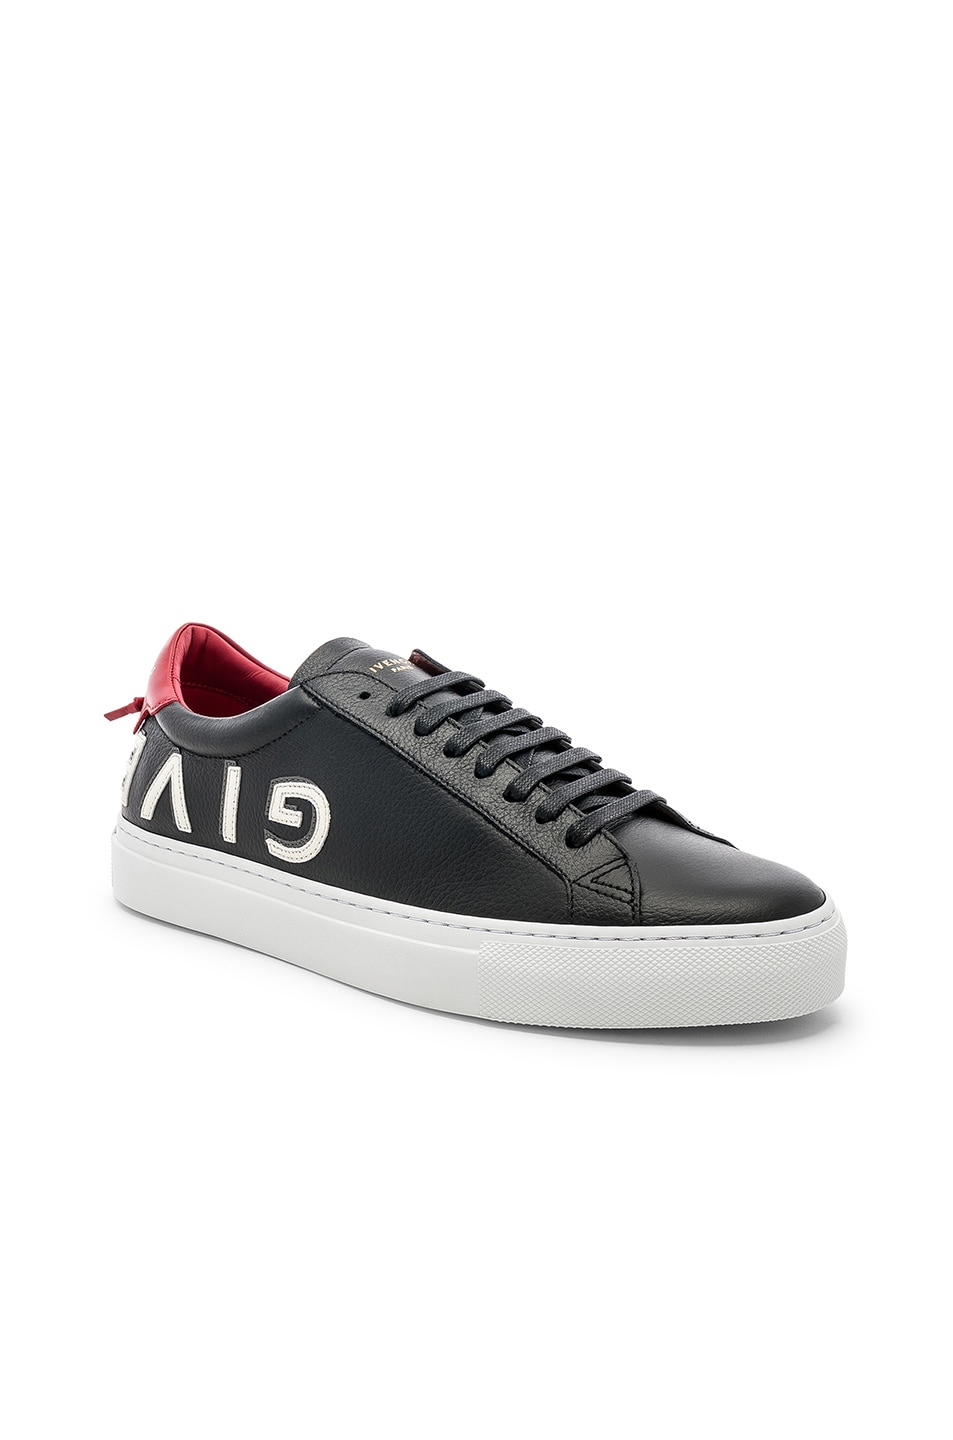 Image 1 of Givenchy Leather Urban Street Low Sneakers in Black & Red